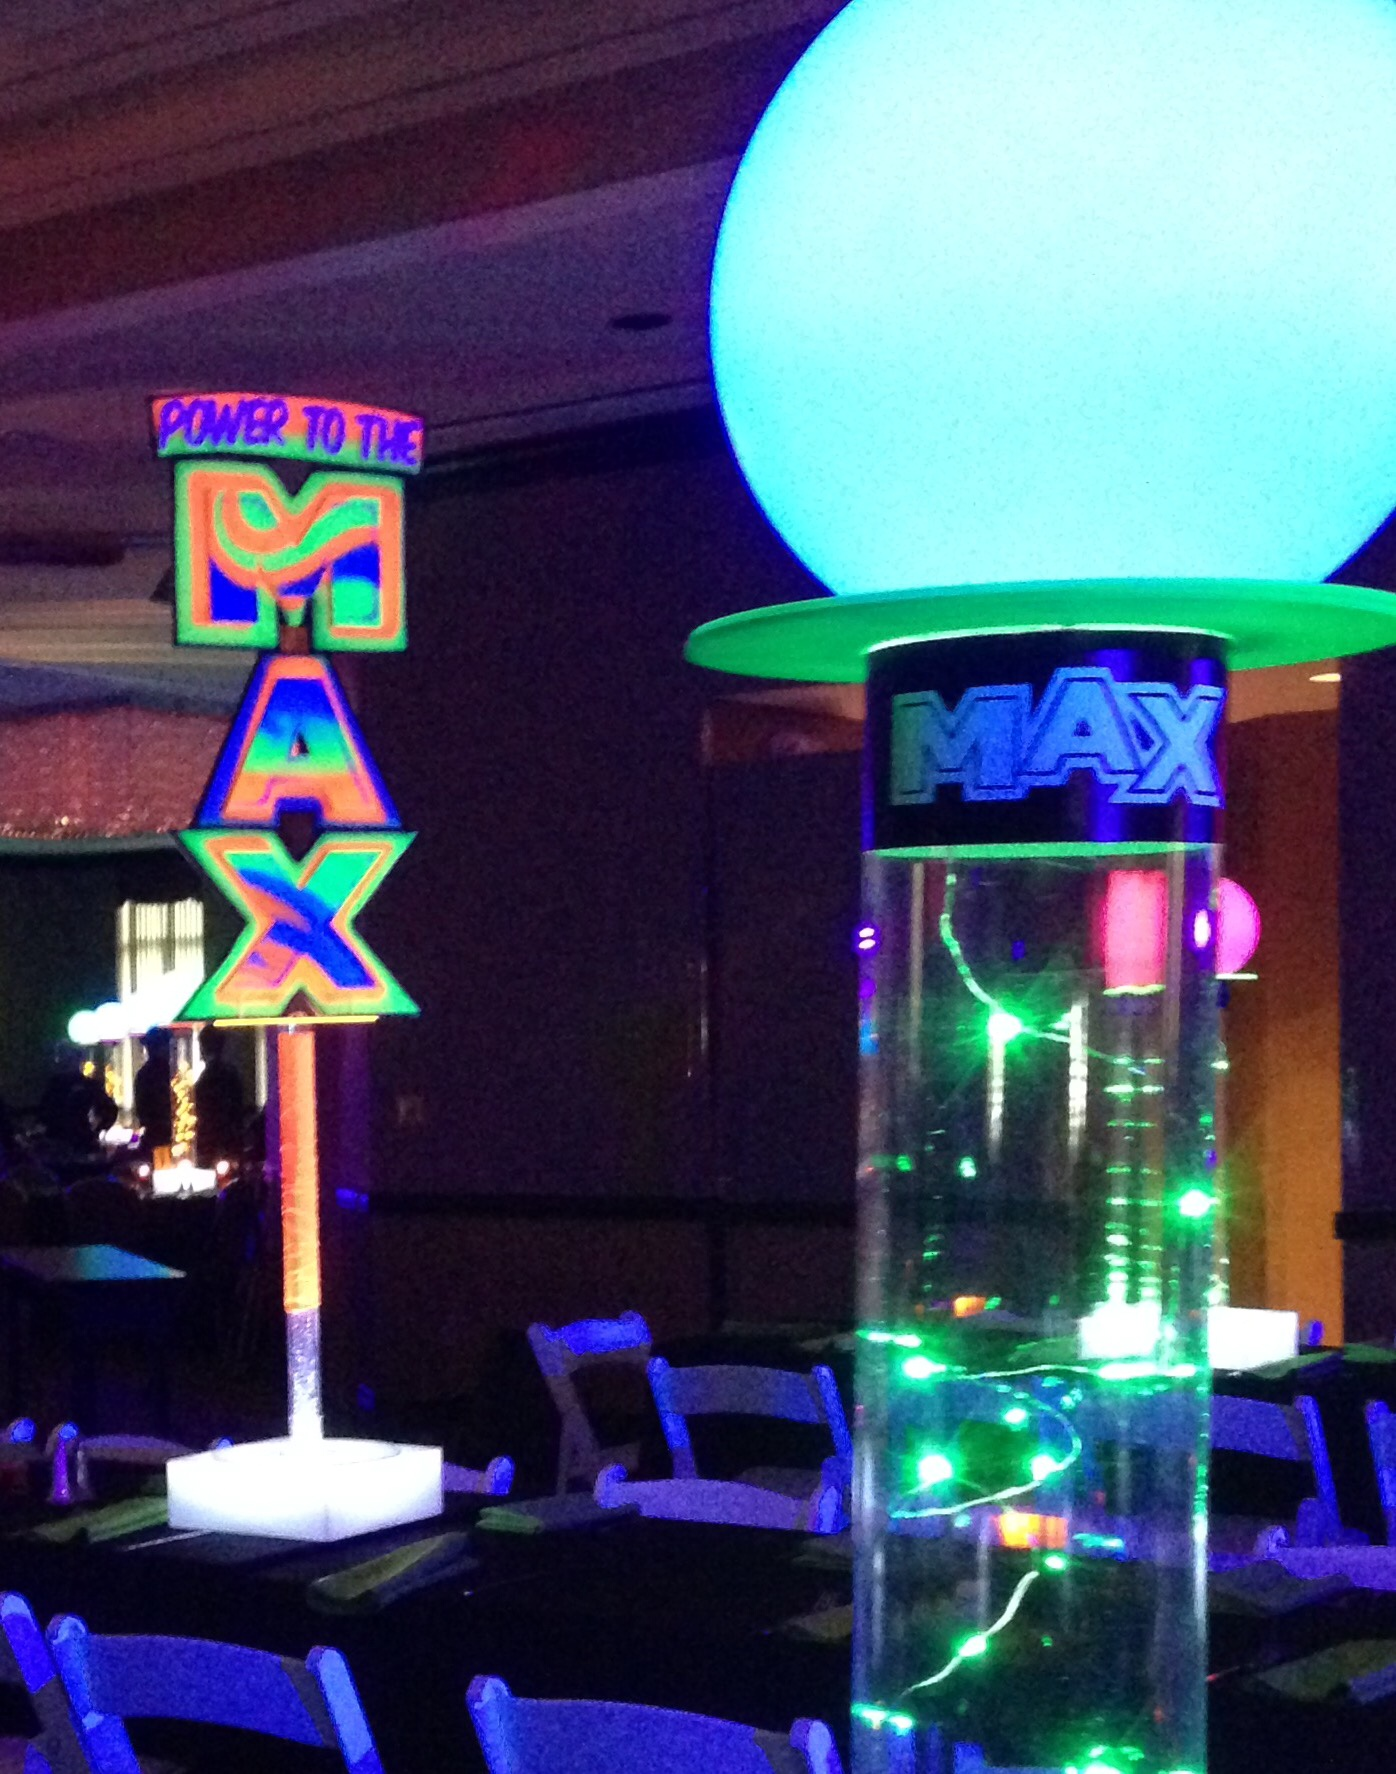 Glow in the Dark Bar Mitzvah - Power To the MAX - Kleifield Design & Associates, Inc.